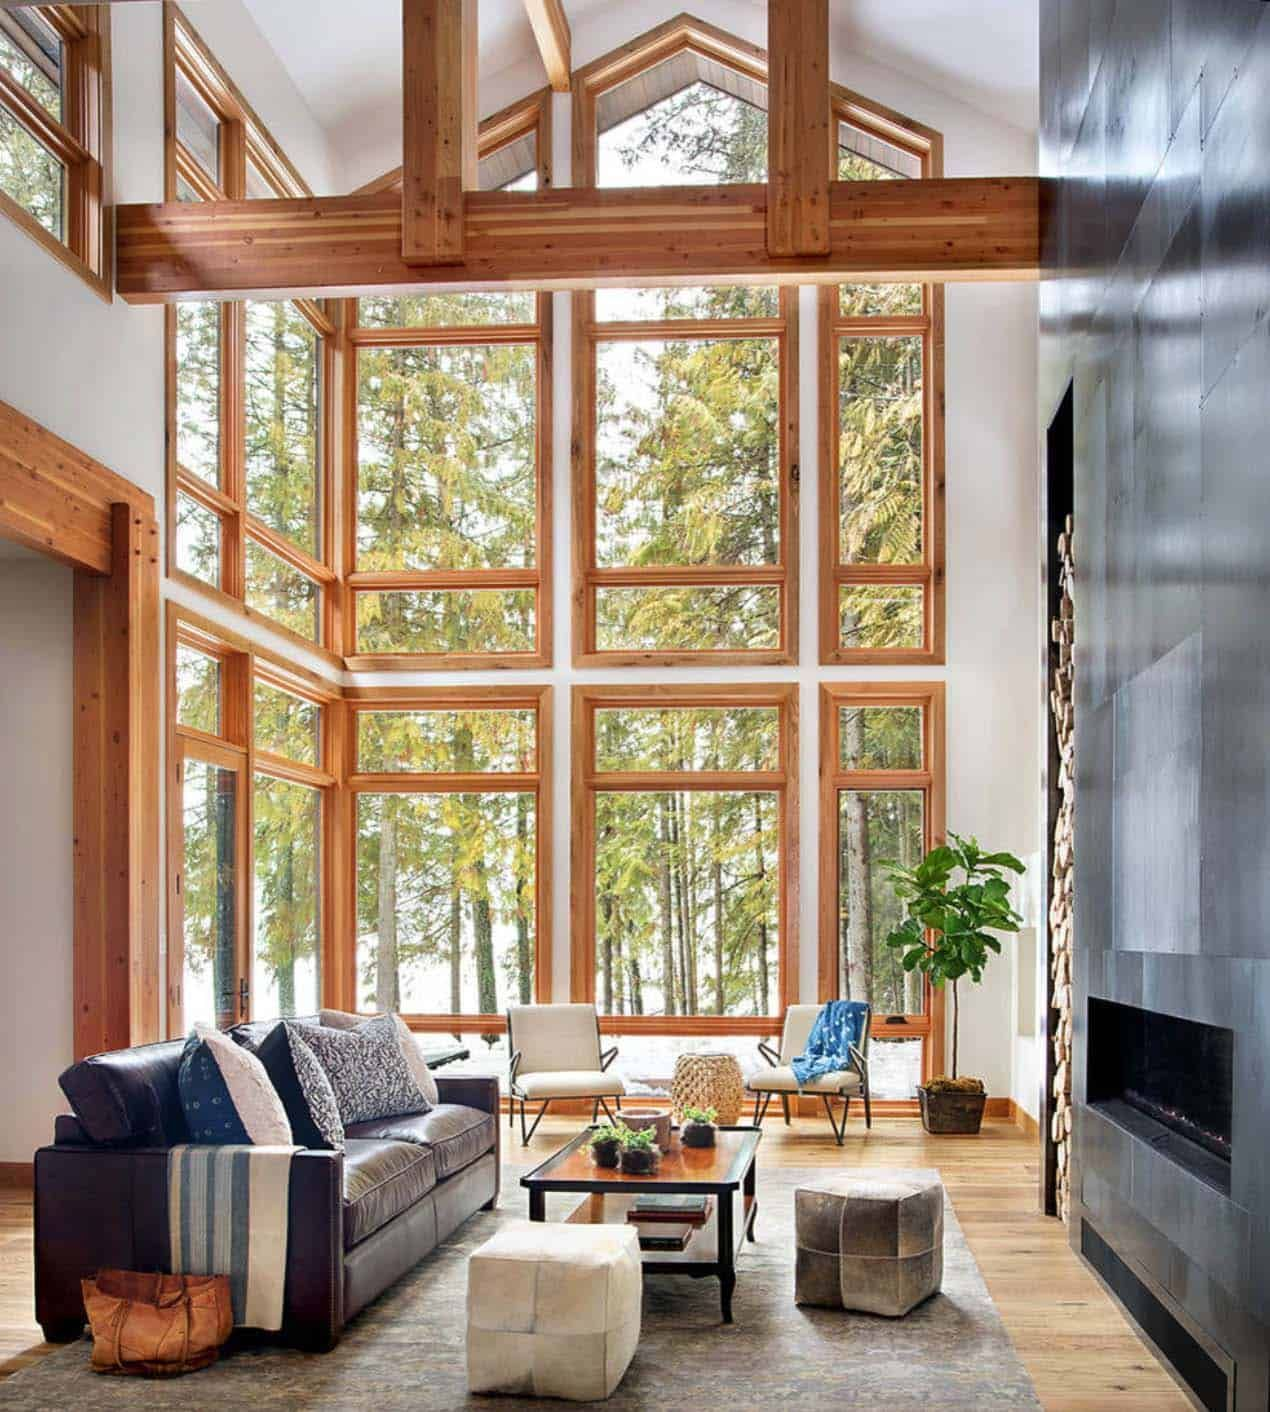 Striking lake house blends modern elements with ...